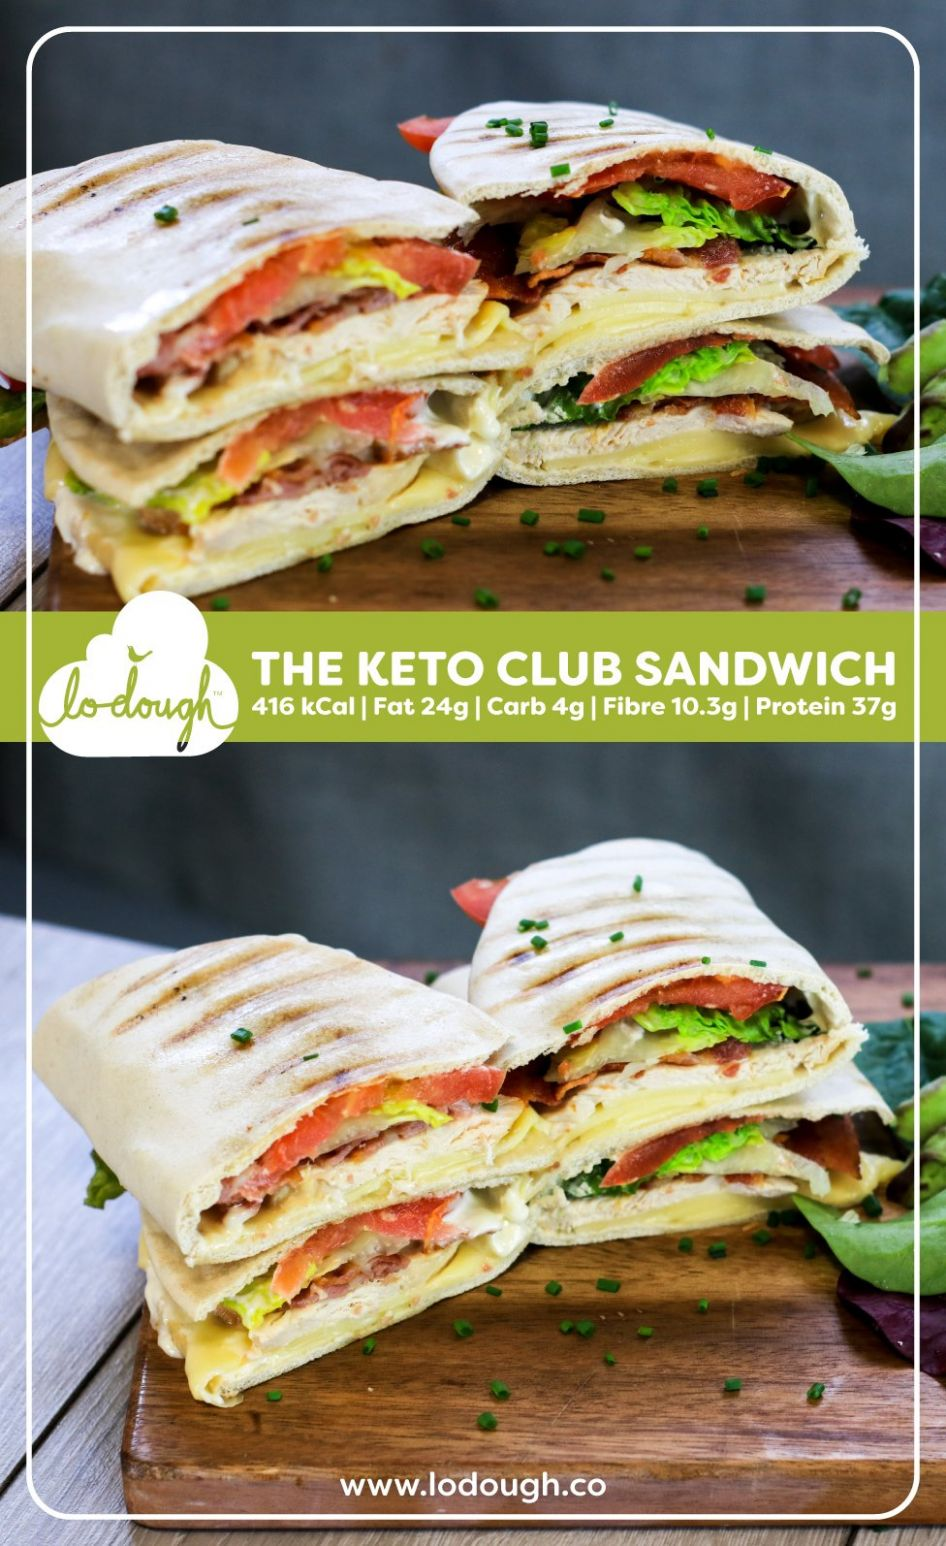 The Keto Club Sandwich